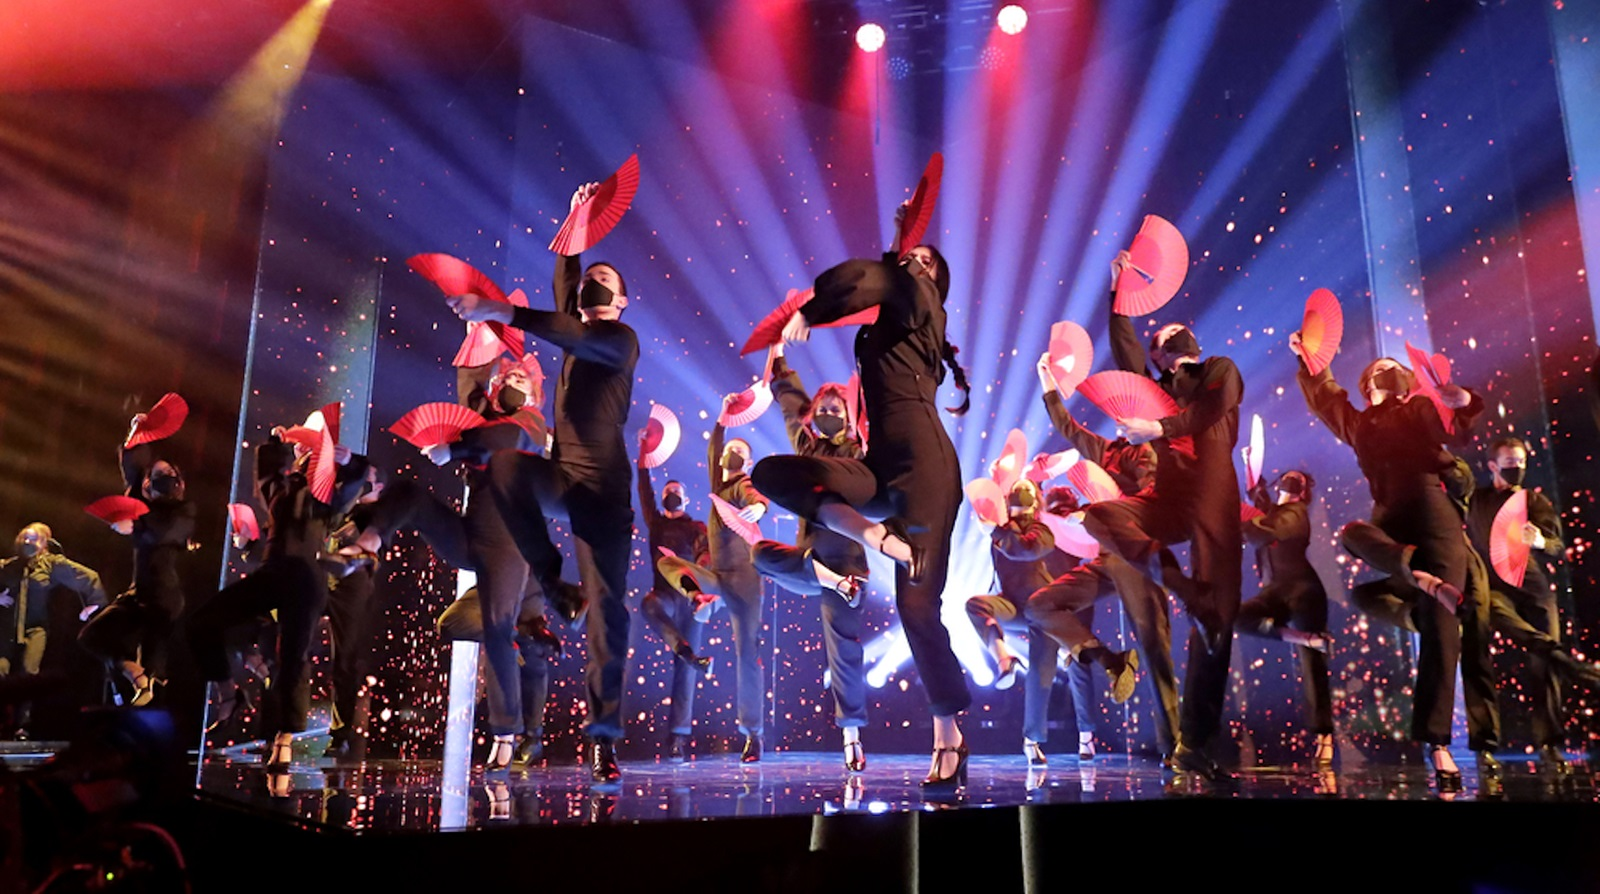 dancers on stage at the Goya Awards